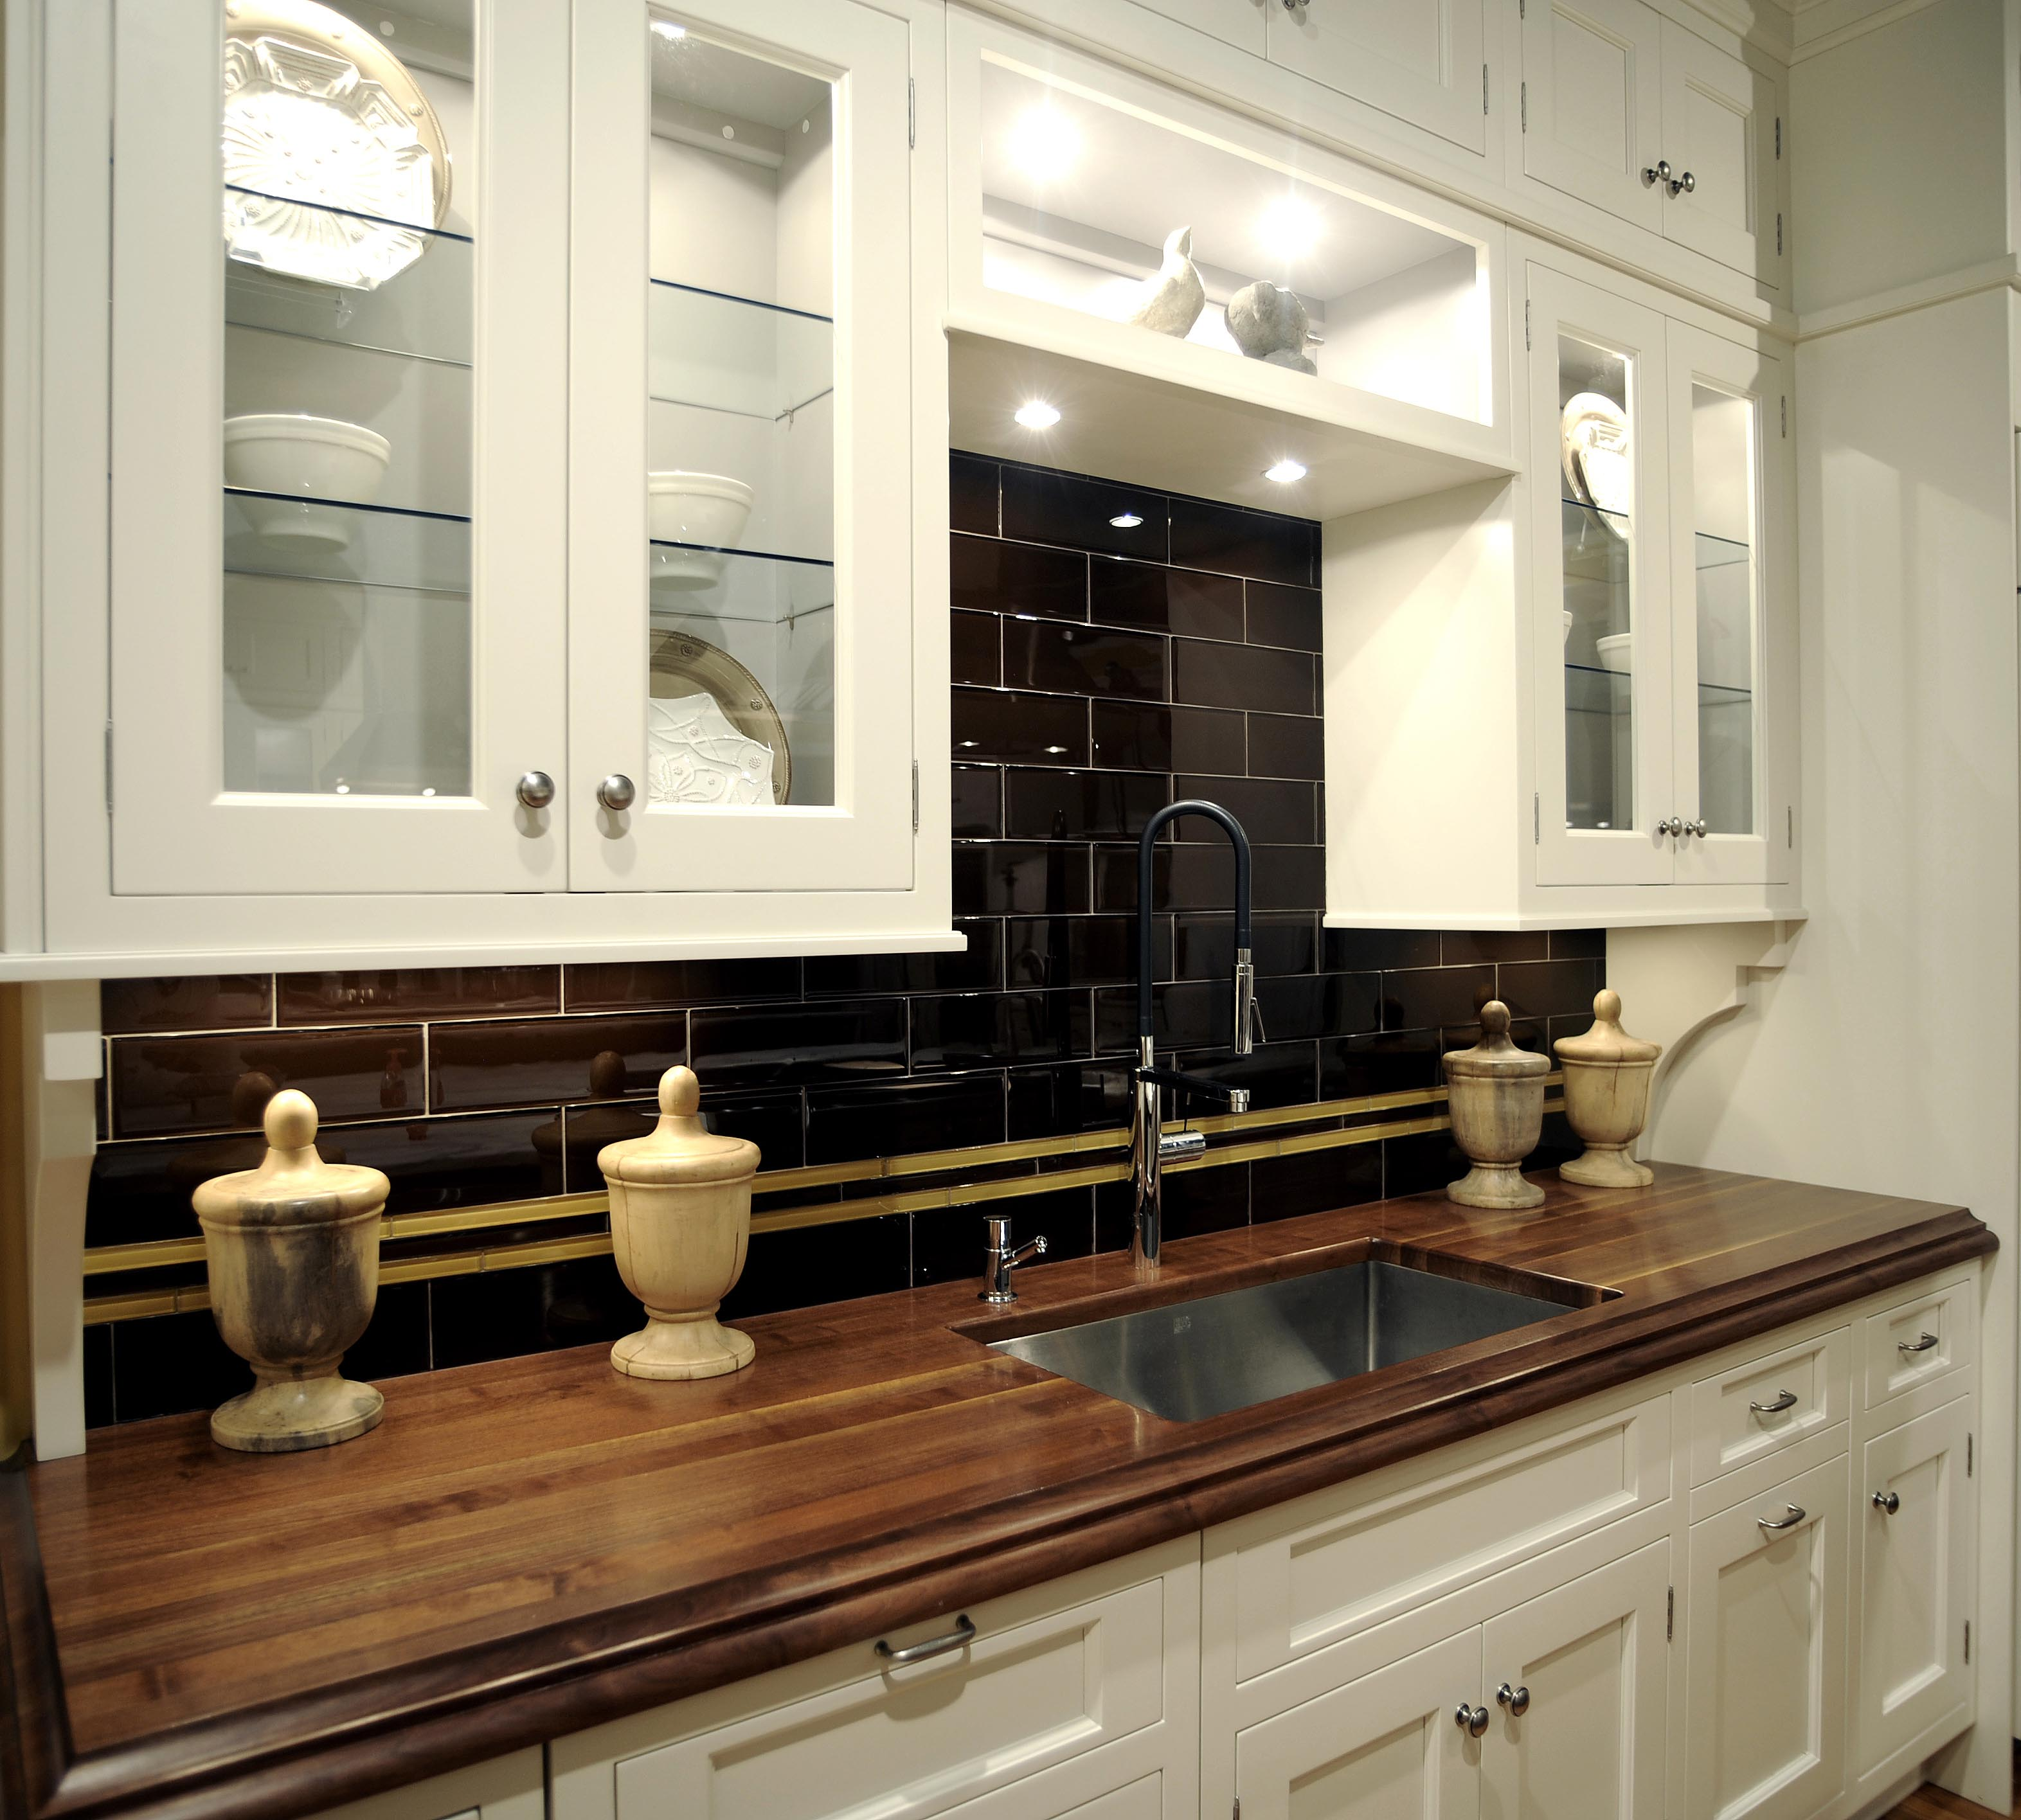 20 Ideas for Installing a Wooden Countertop at Your Home   Patterns Hub